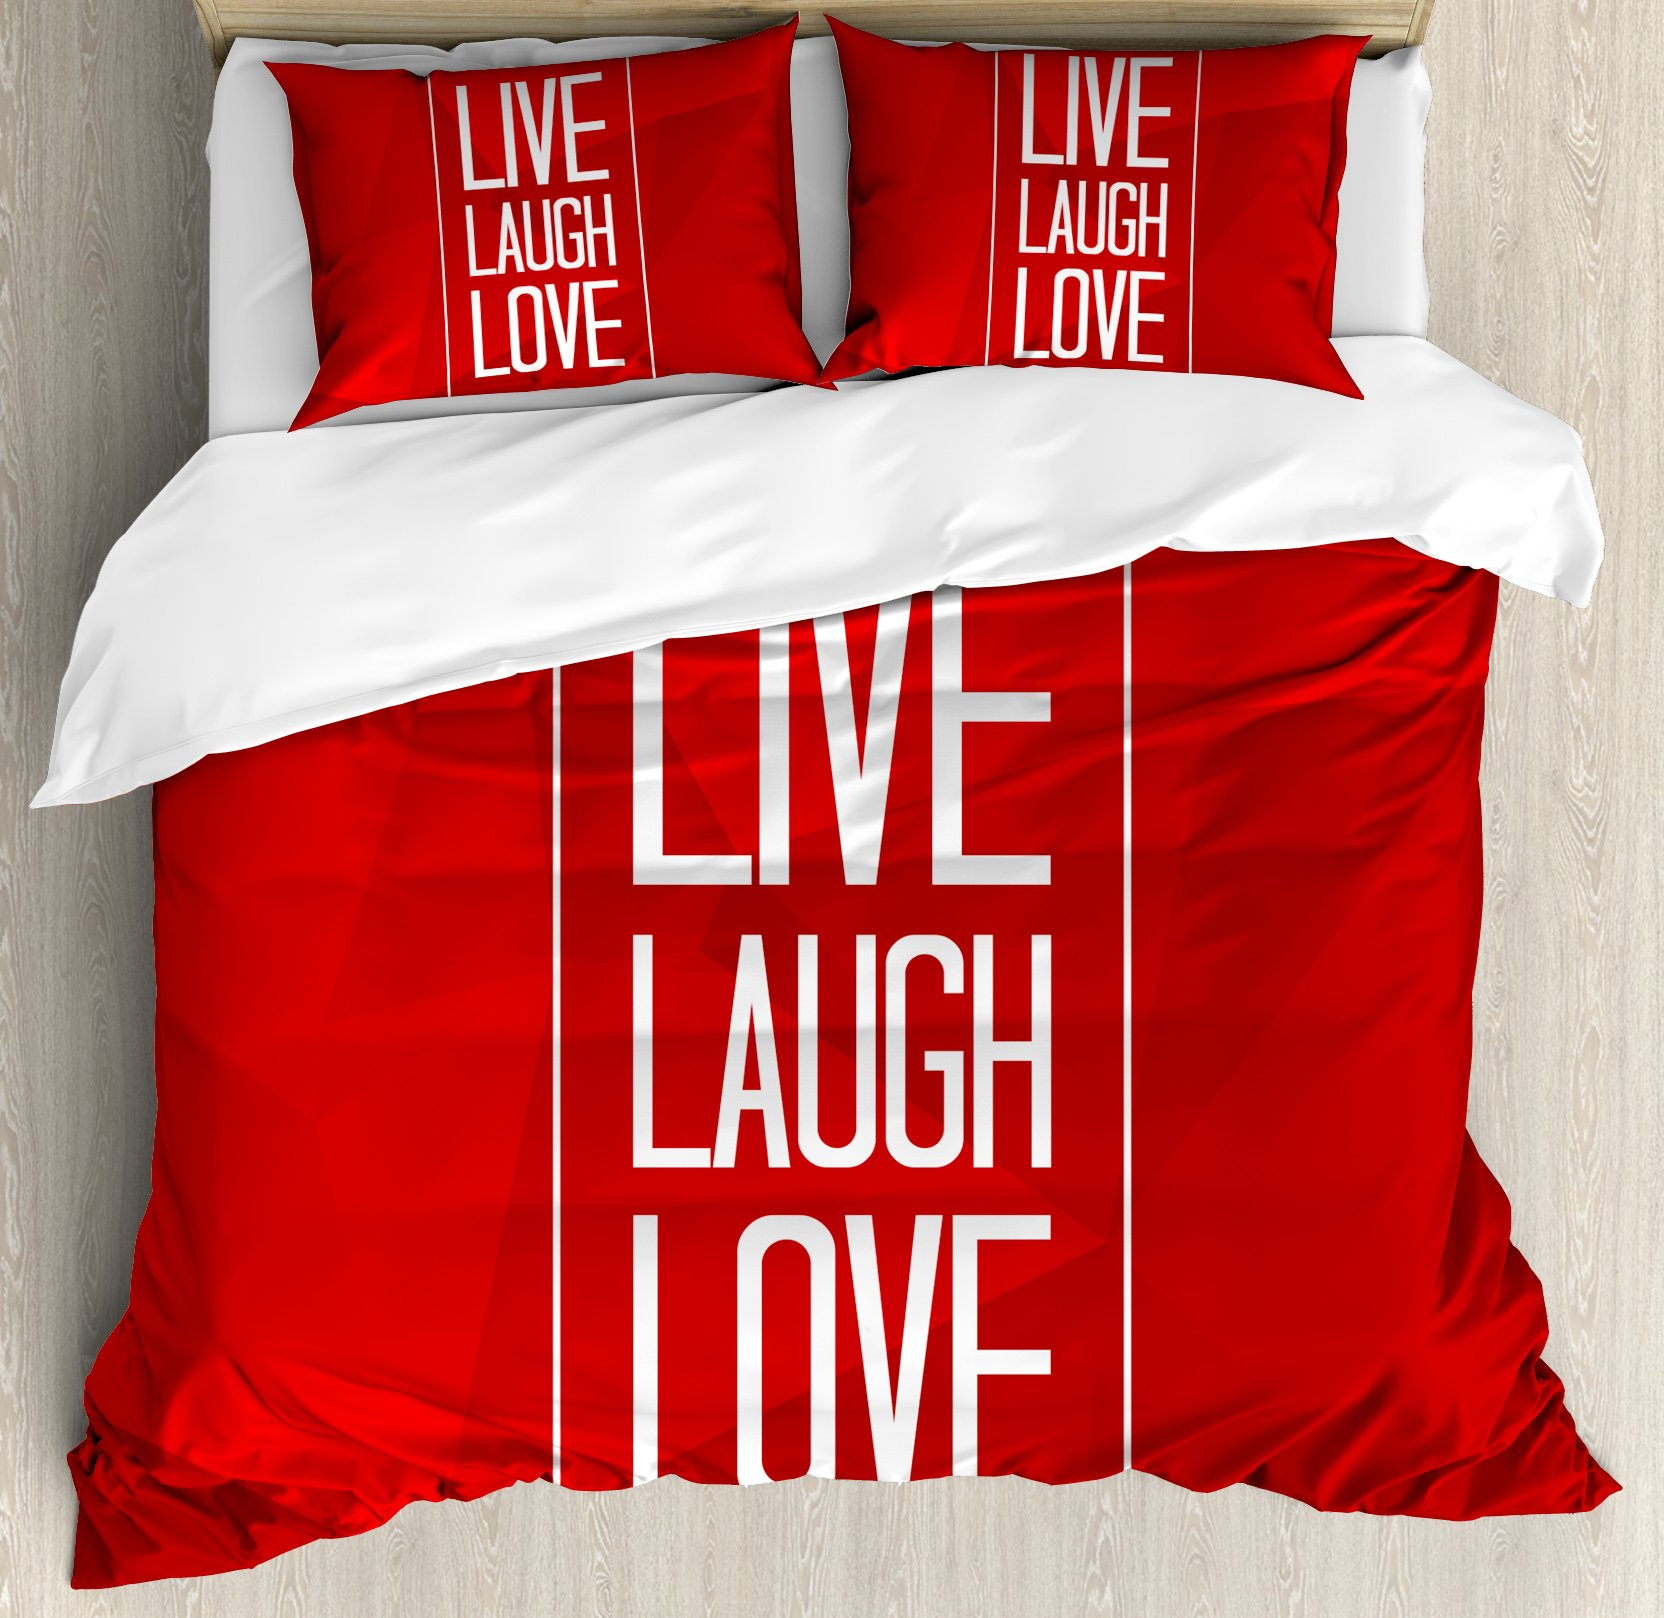 Live Laugh Love Duvet Cover Set King Size by Ambesonne, Abstract Triangular Polygonal Background with a Quote in Rectangular Frame, Decorative 3 Piece Bedding Set with 2 Pillow Shams, Red White